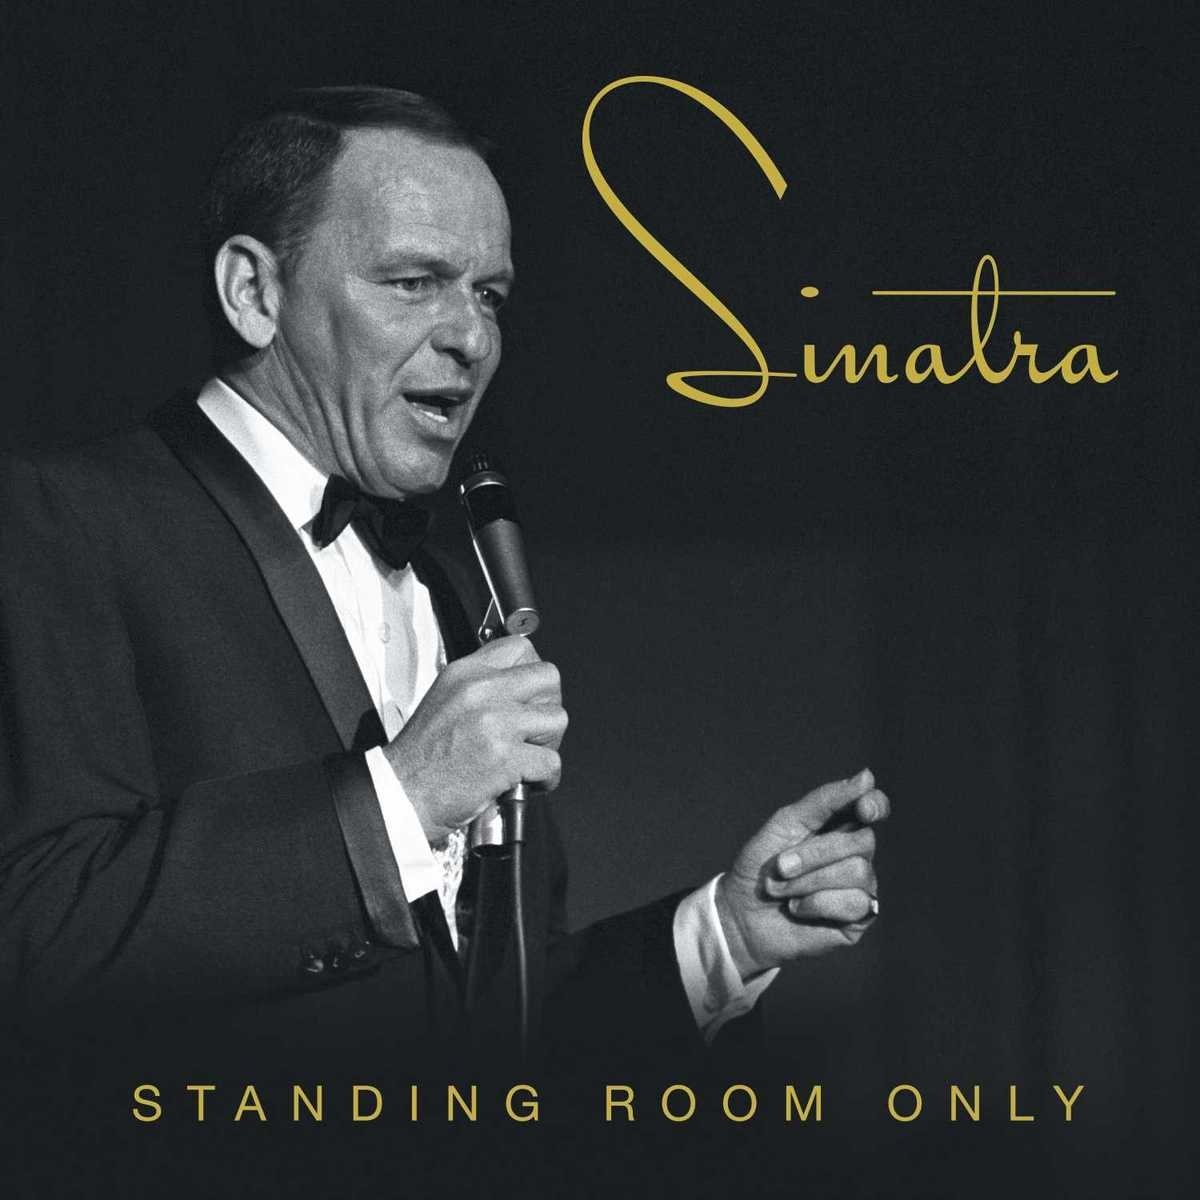 Standing Room Only [3 CD] by Universal Music Enterprises